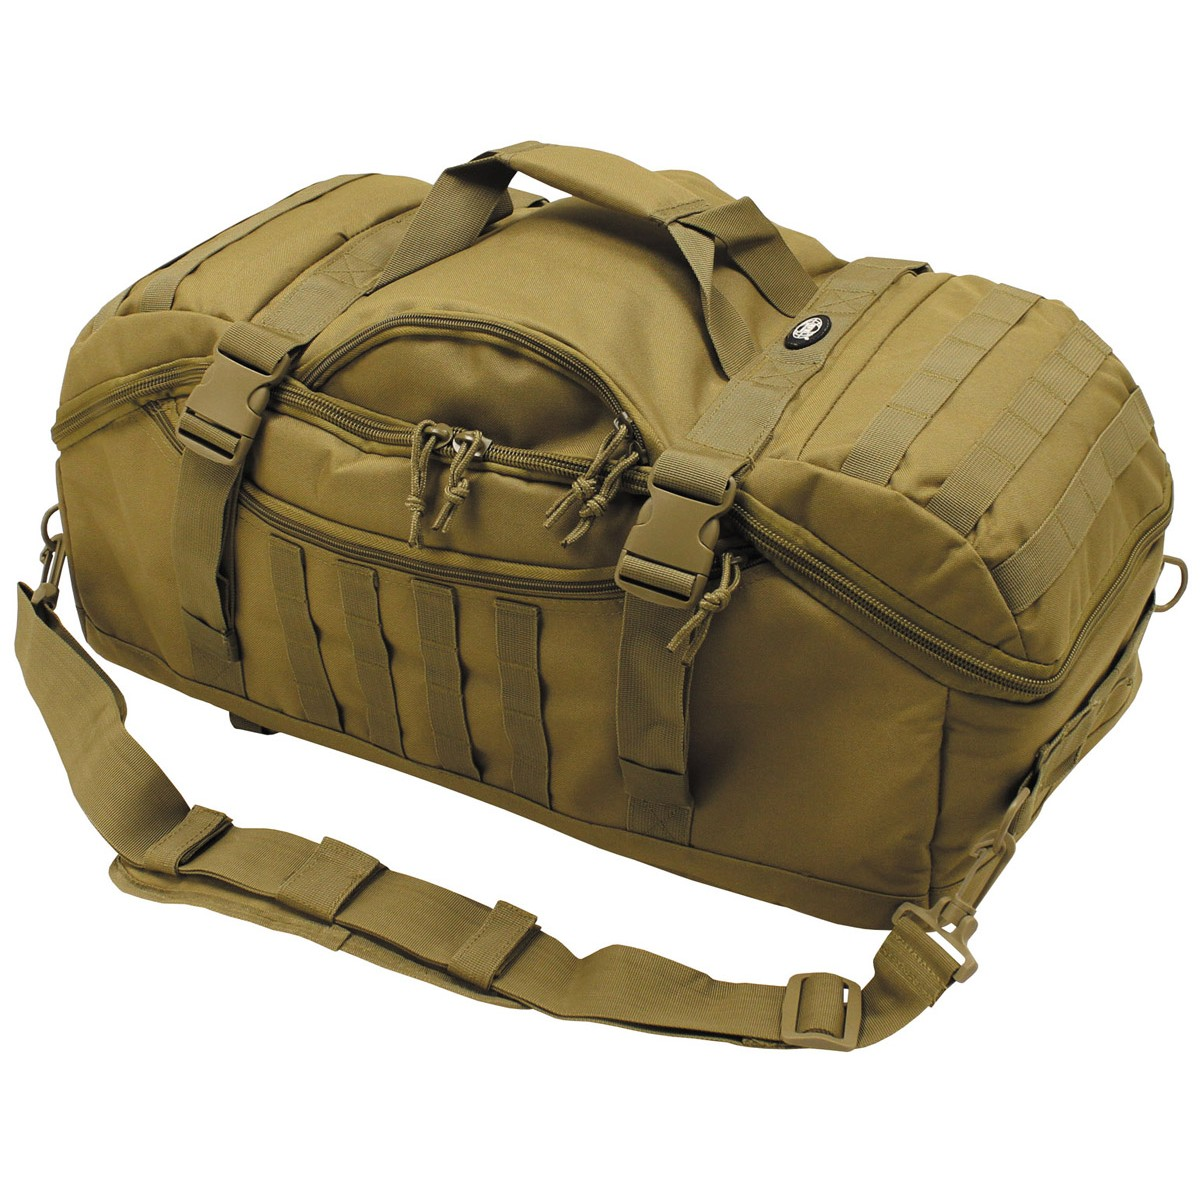 Military Tactical Shooters Multiwear Transport Travel Bag 48L Coyote